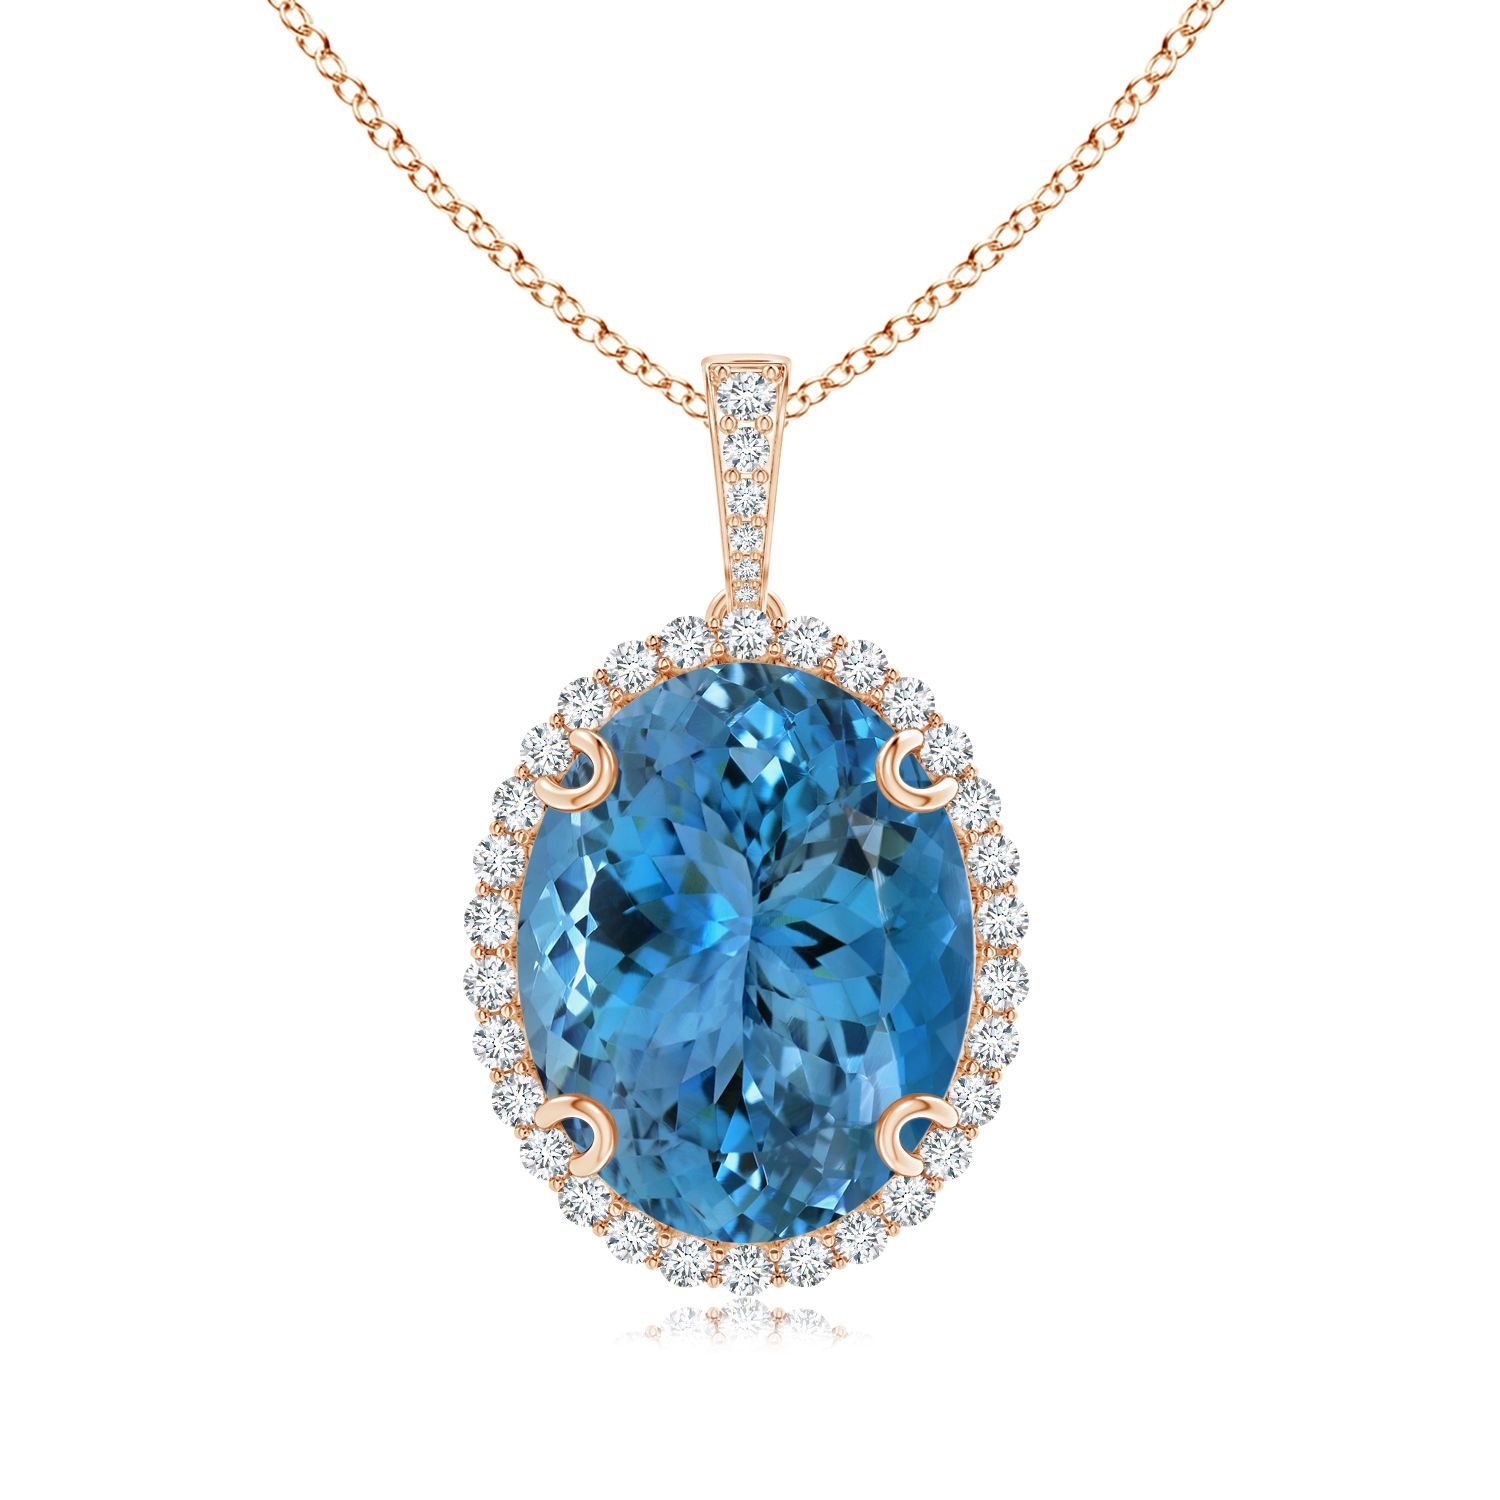 Angara Aquamarine Necklace - GIA Certified Oval Aquamarine Halo Pendant with Diamond Bale S9fuwIhX